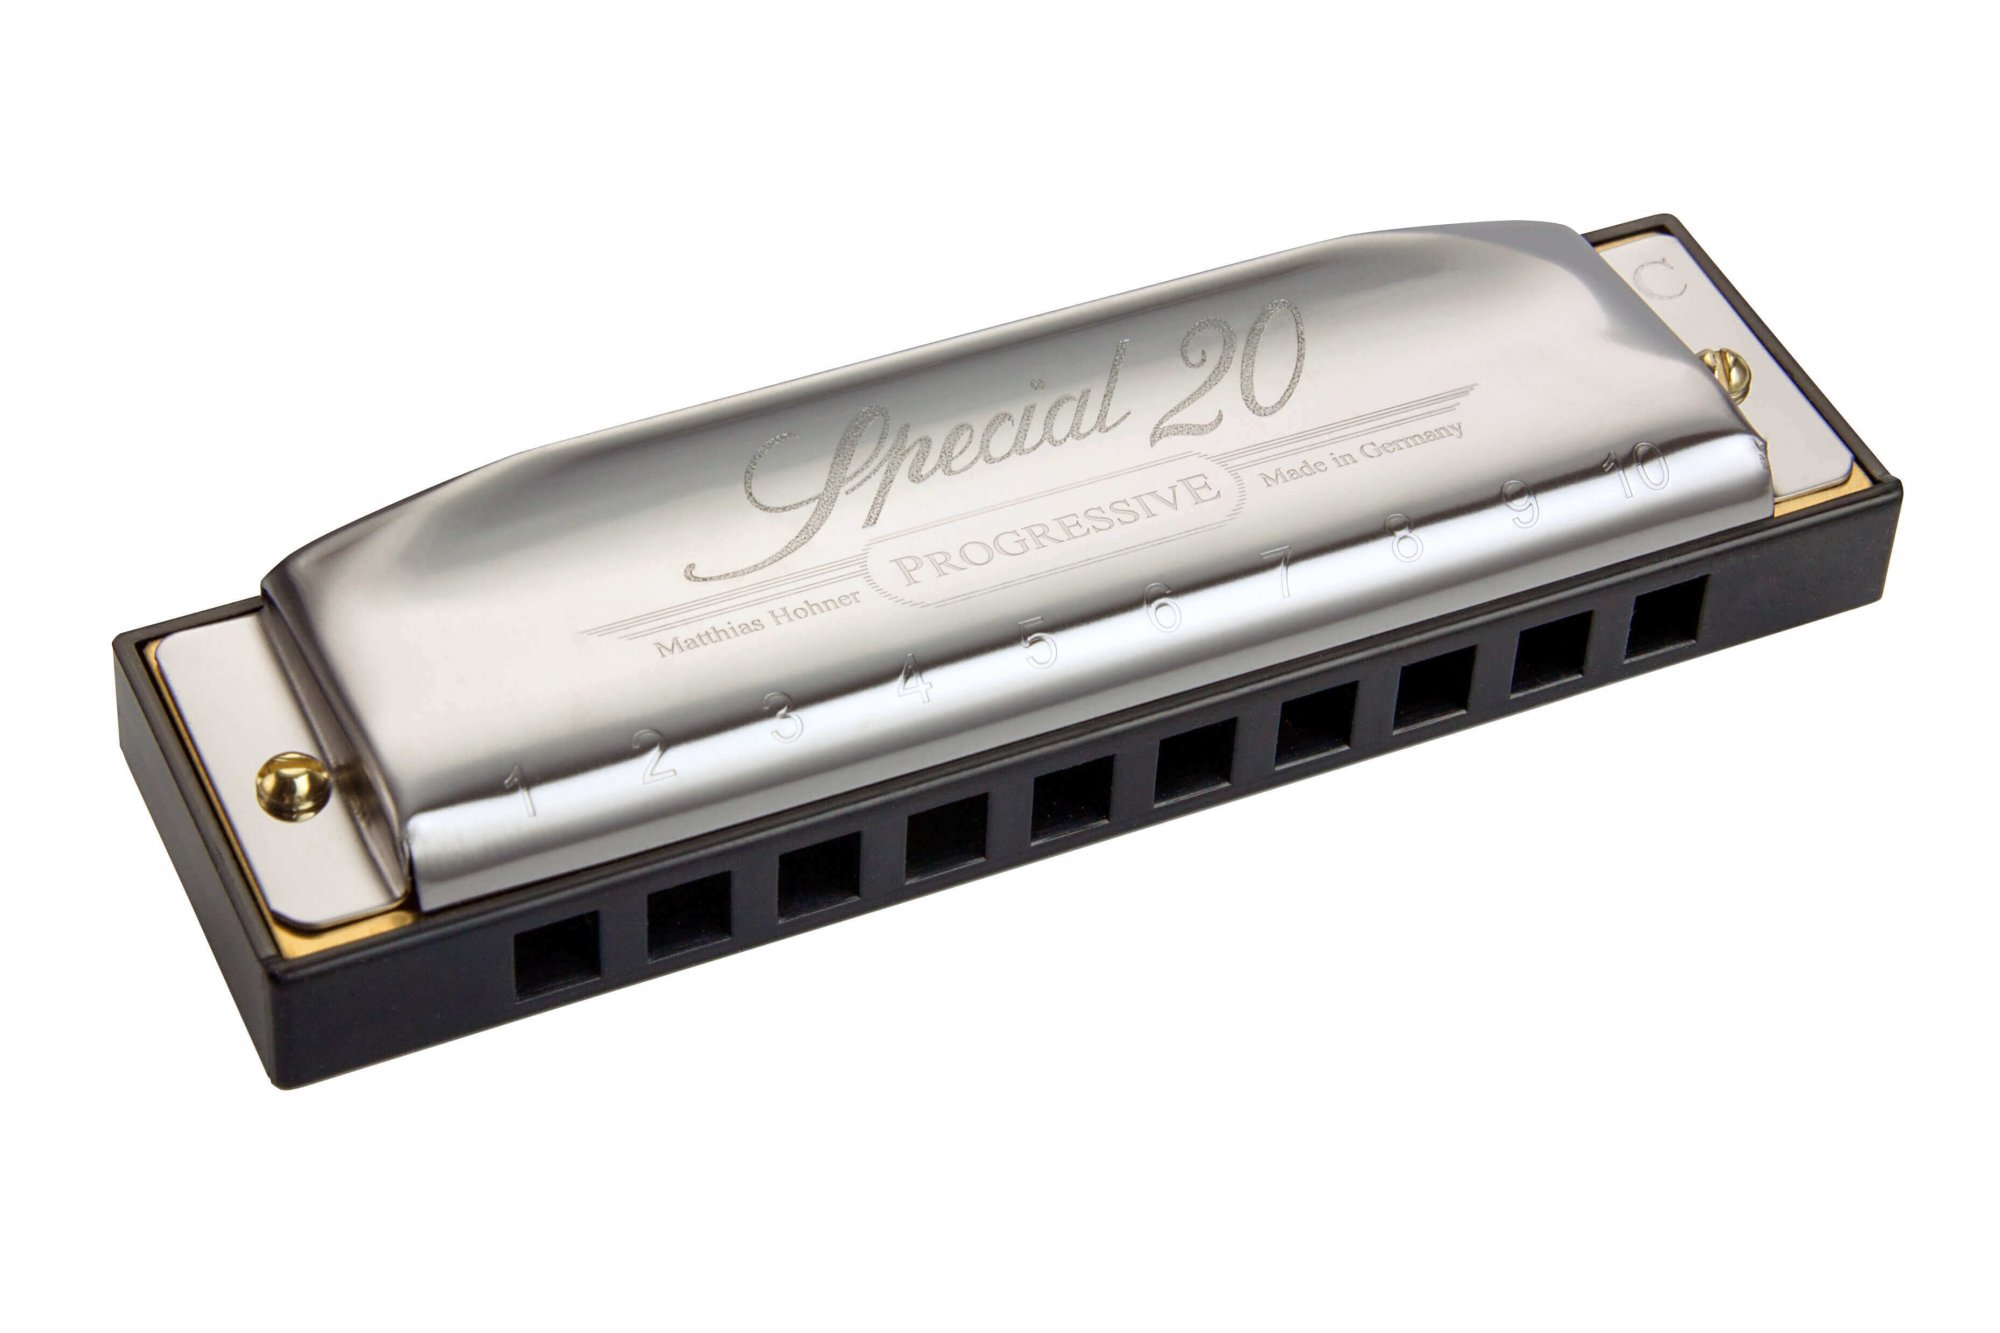 HOHNER HARMONICA 560PBX-A SPECIAL 20 KEY OF A